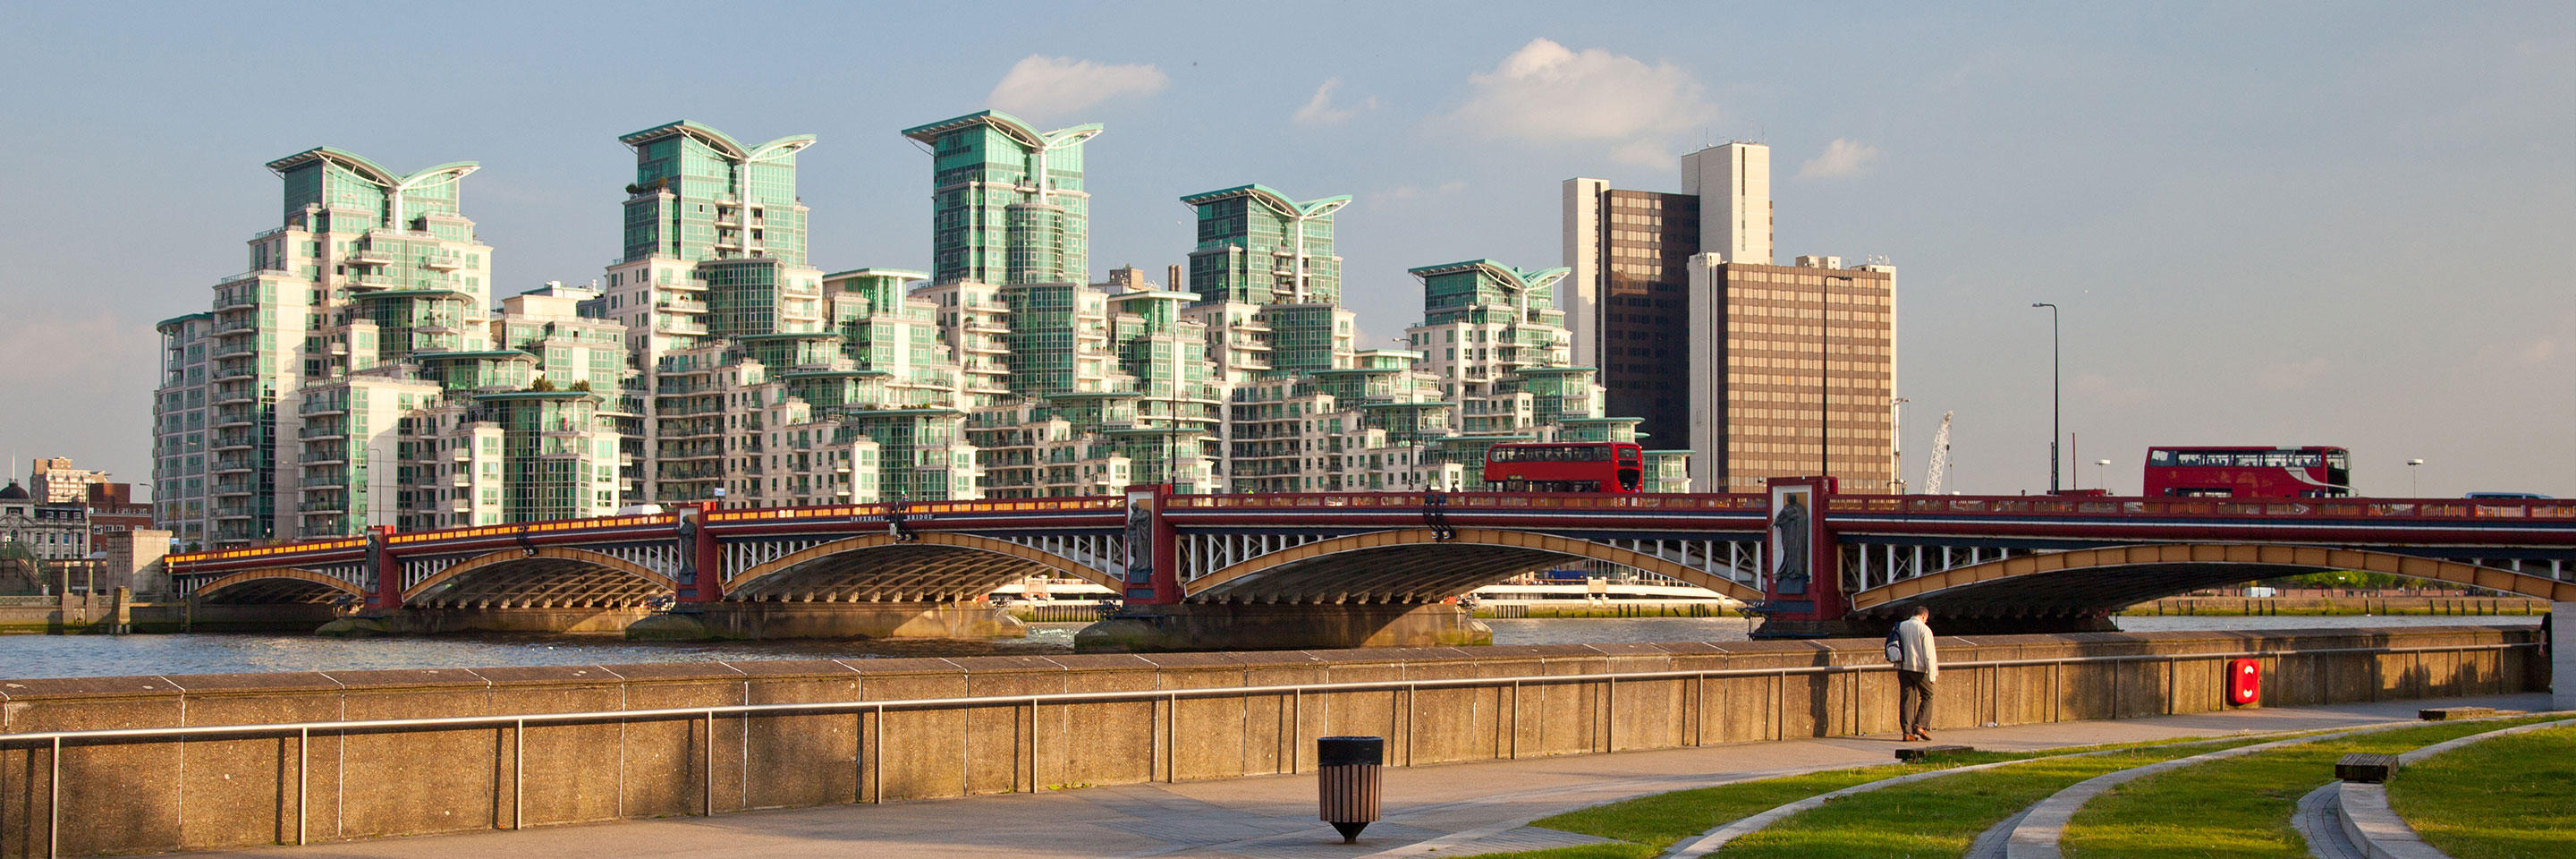 Vauxhall Bridge panorama